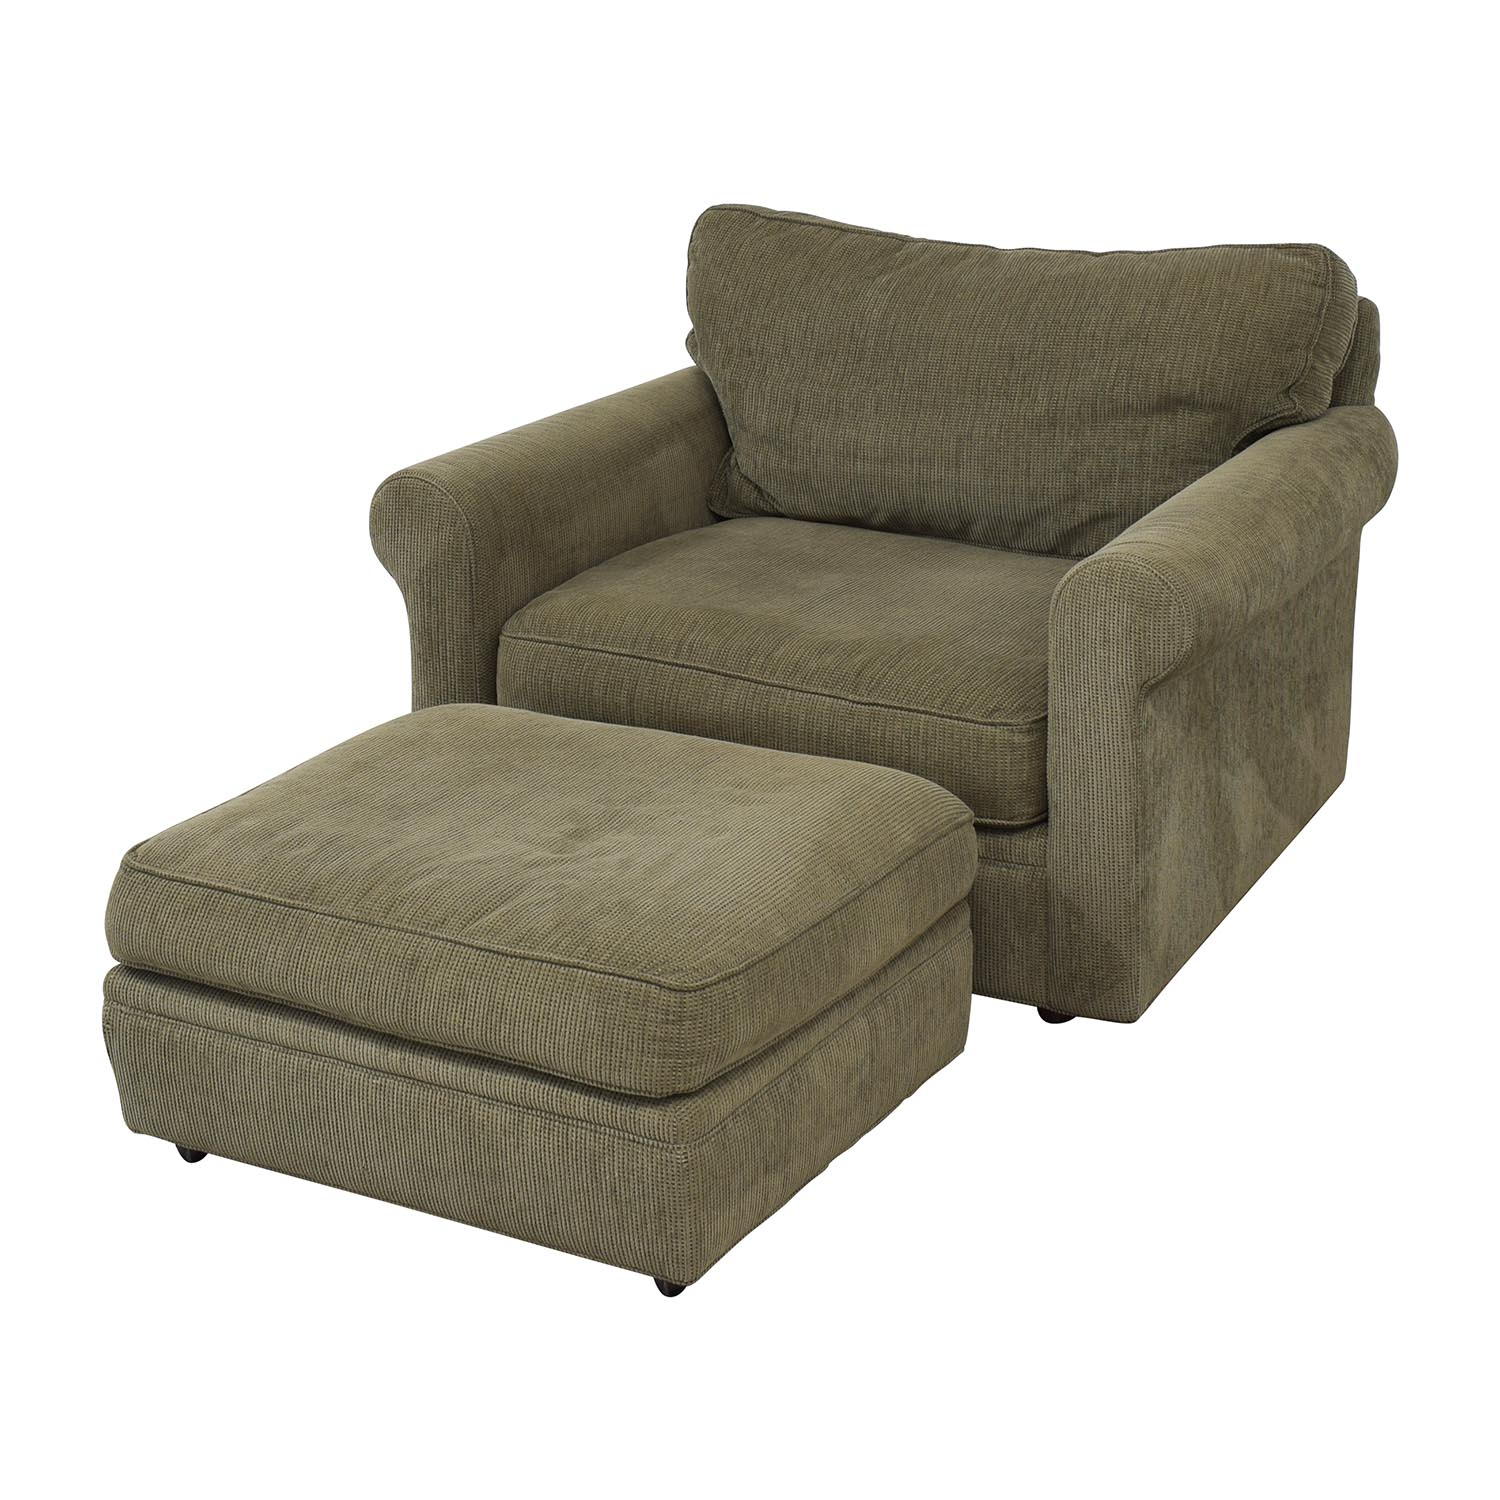 buy Crate & Barrel Upholstered Chair with Ottoman Crate & Barrel